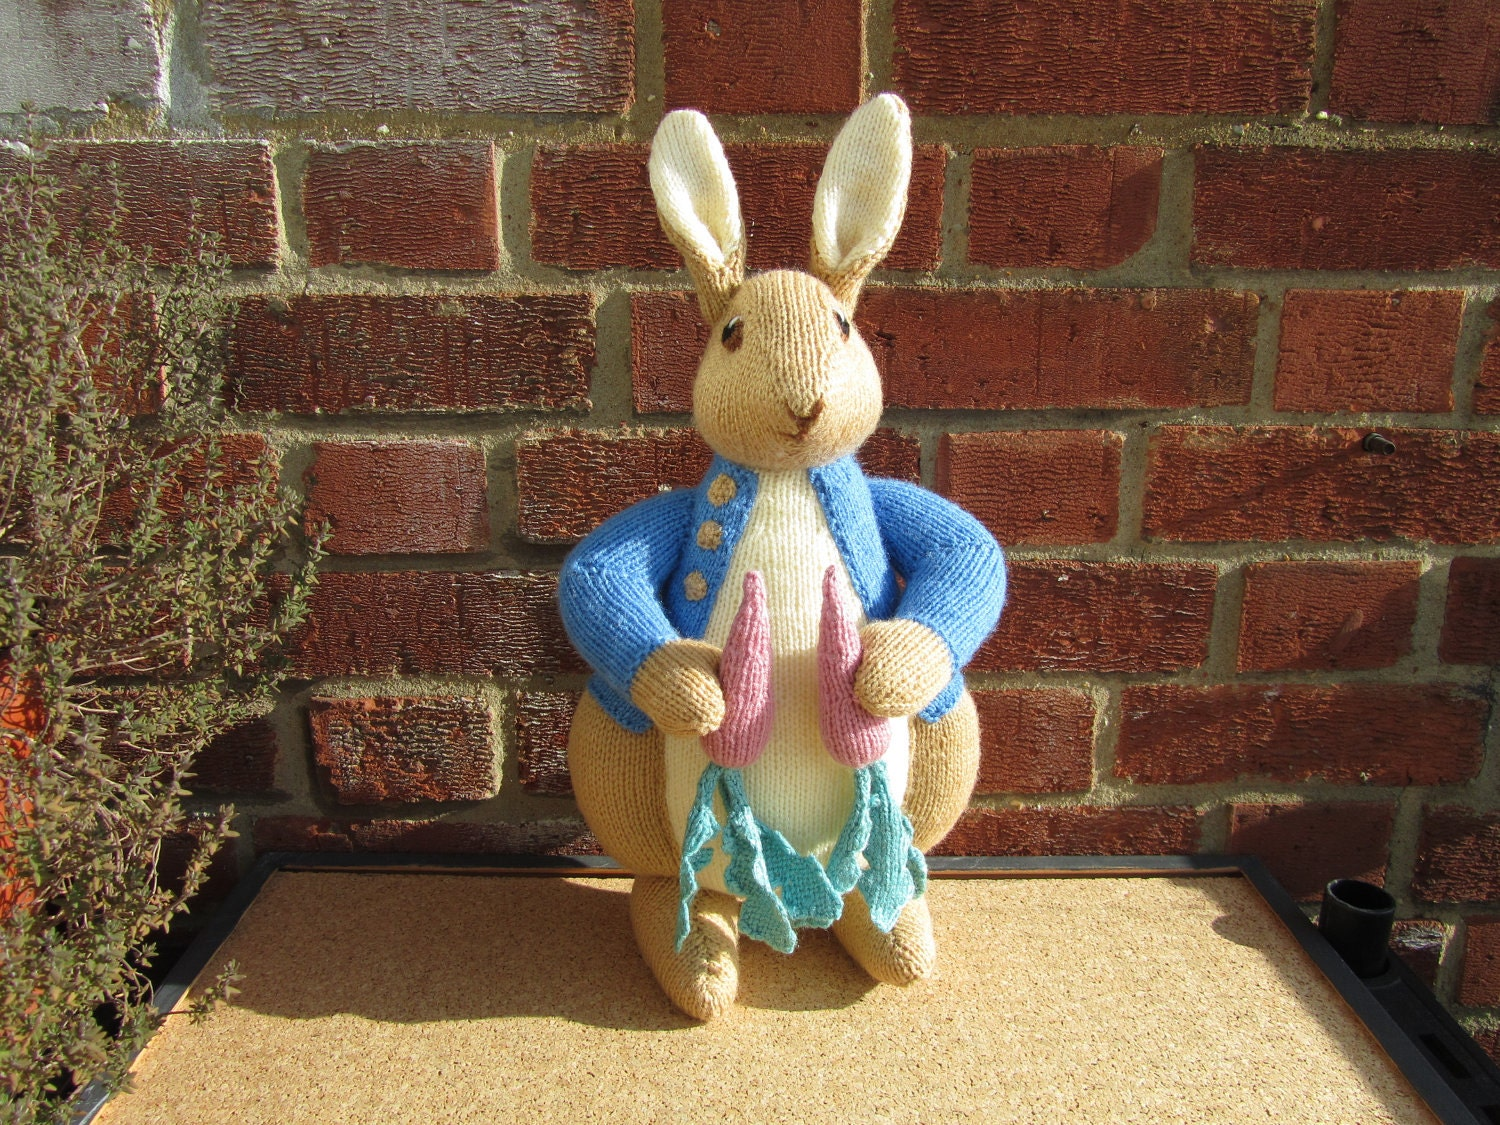 Peter Rabbit Knitting Pattern Download : Hand knitted toy beatrix potter peter rabbit from alan dart